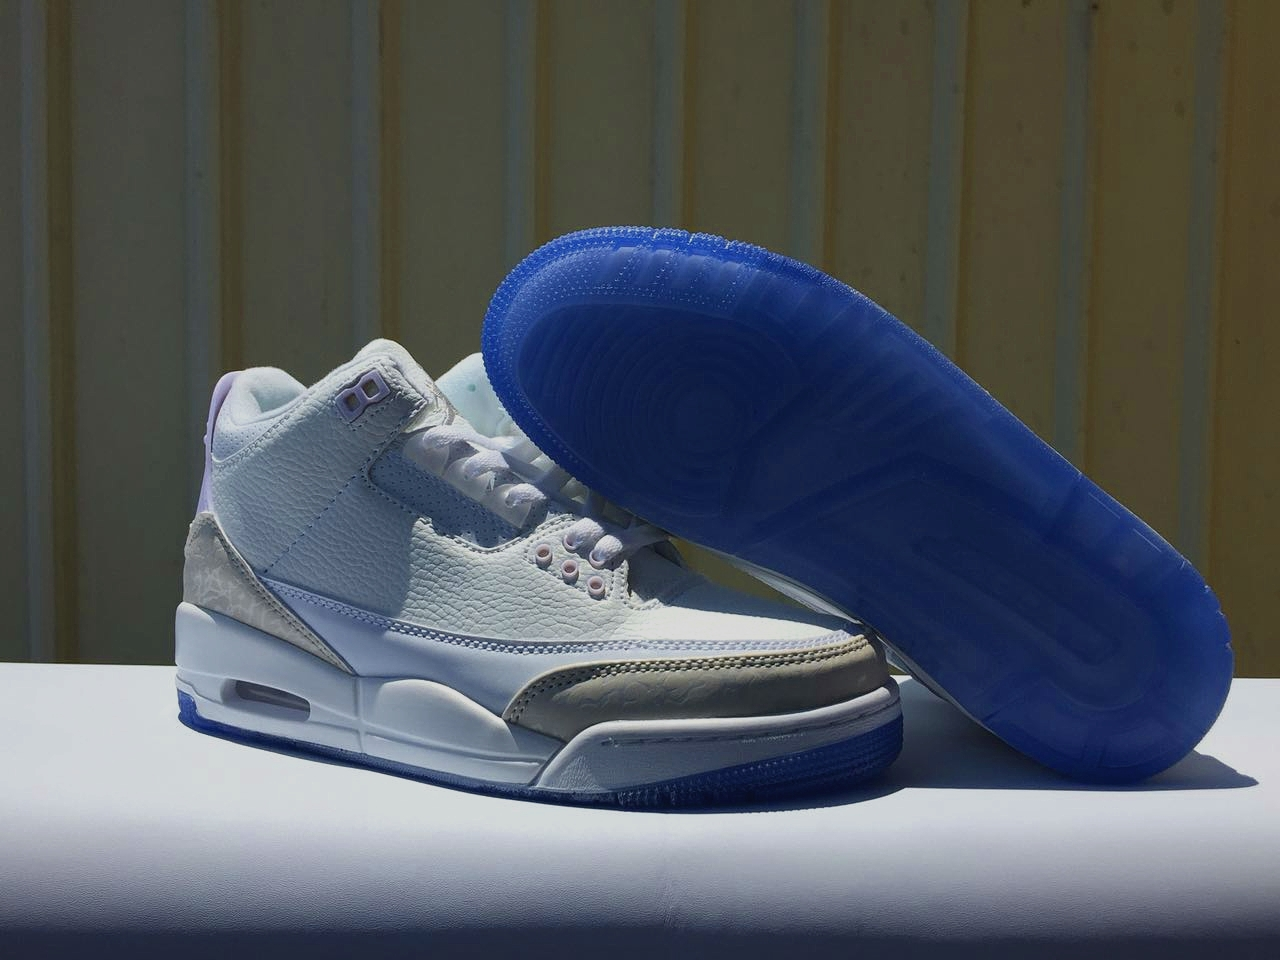 New Air Jordan 3 All White Transparent Sole Shoes